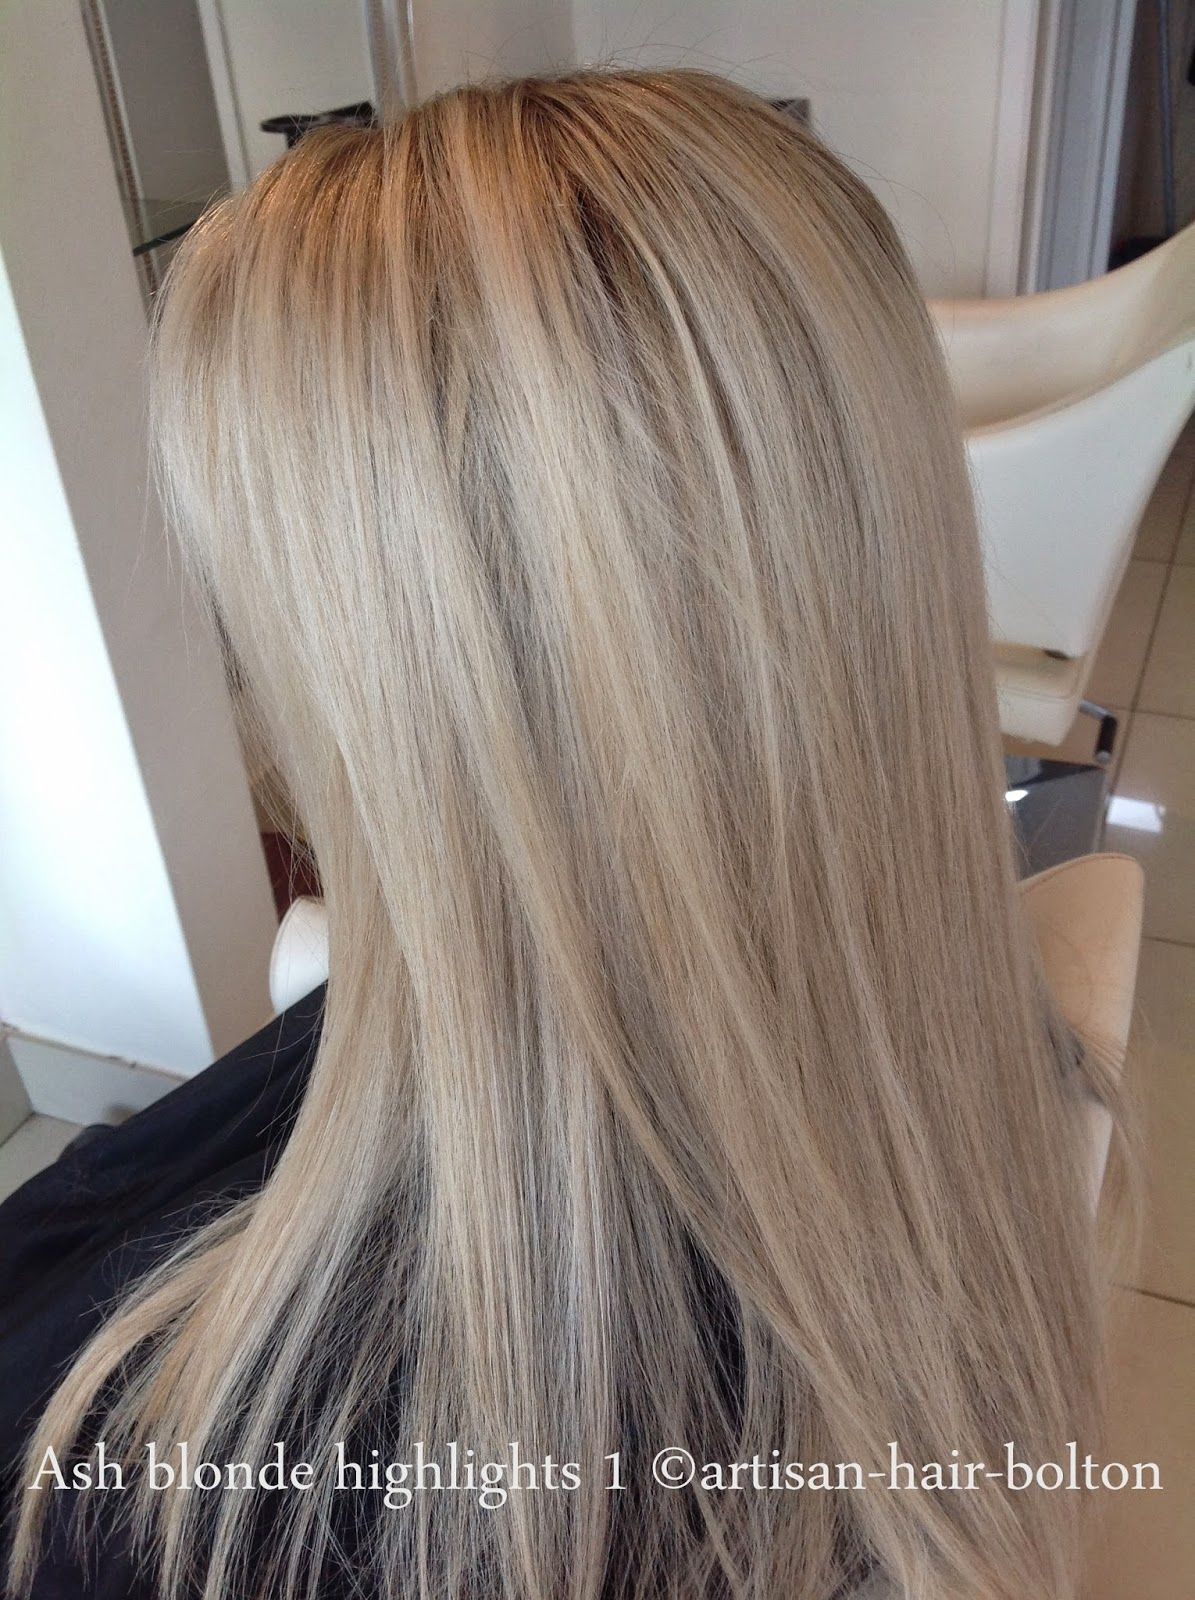 Ash blonde hair with highlights hair styles pinterest one of the most flexible hair colors to highlight is brown hair whether light or dark brown hair there is possibility for a lot of experimentation pmusecretfo Gallery